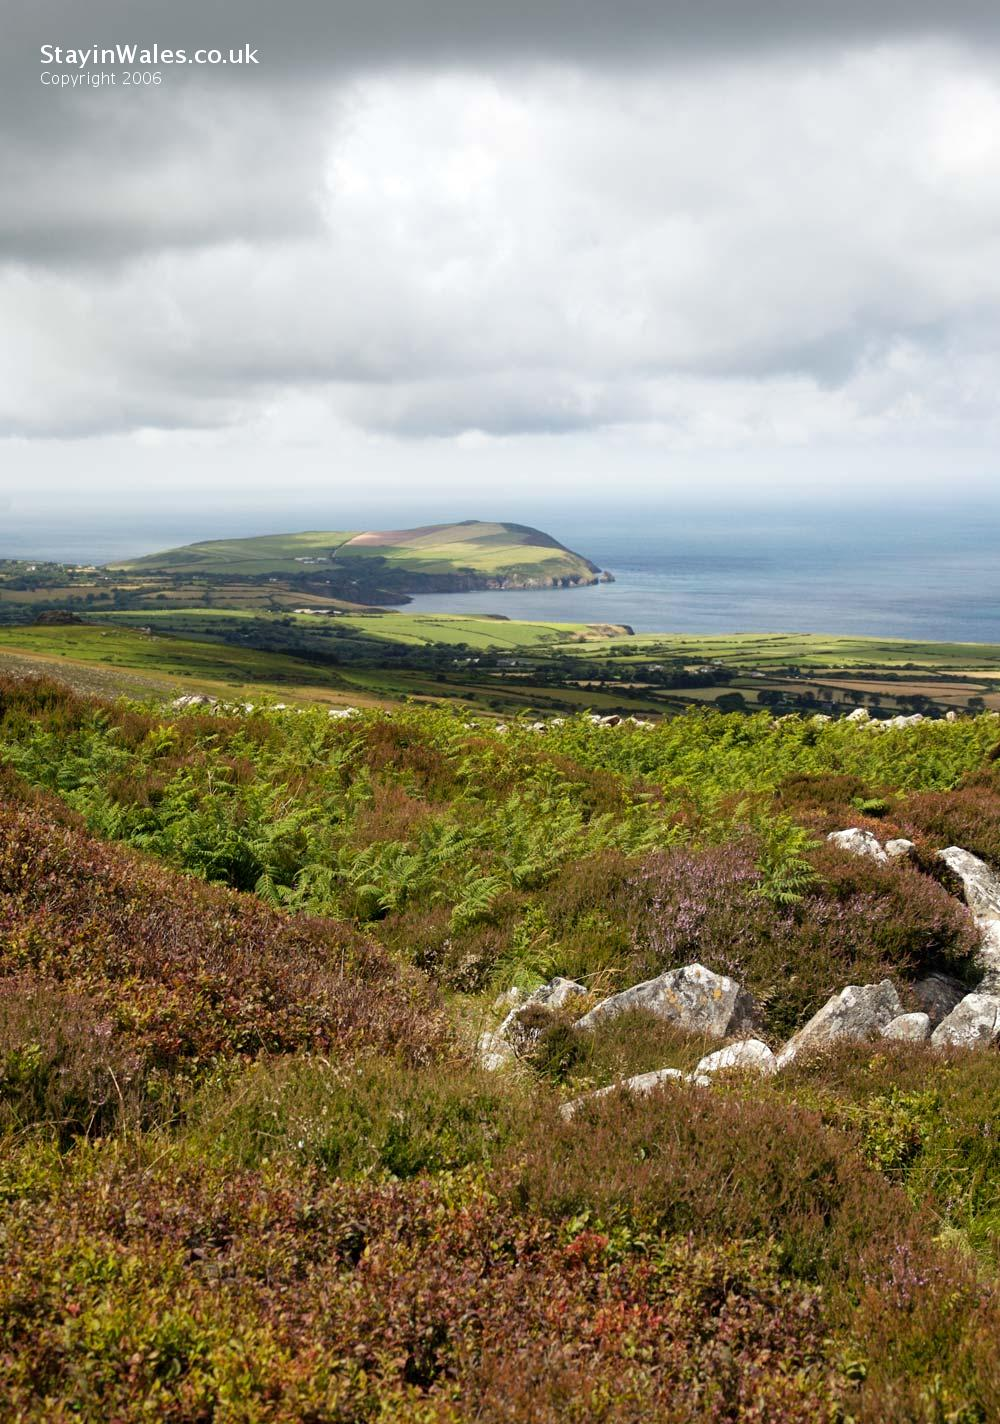 Dinas Head from Carn Ingli, Pembrokeshire